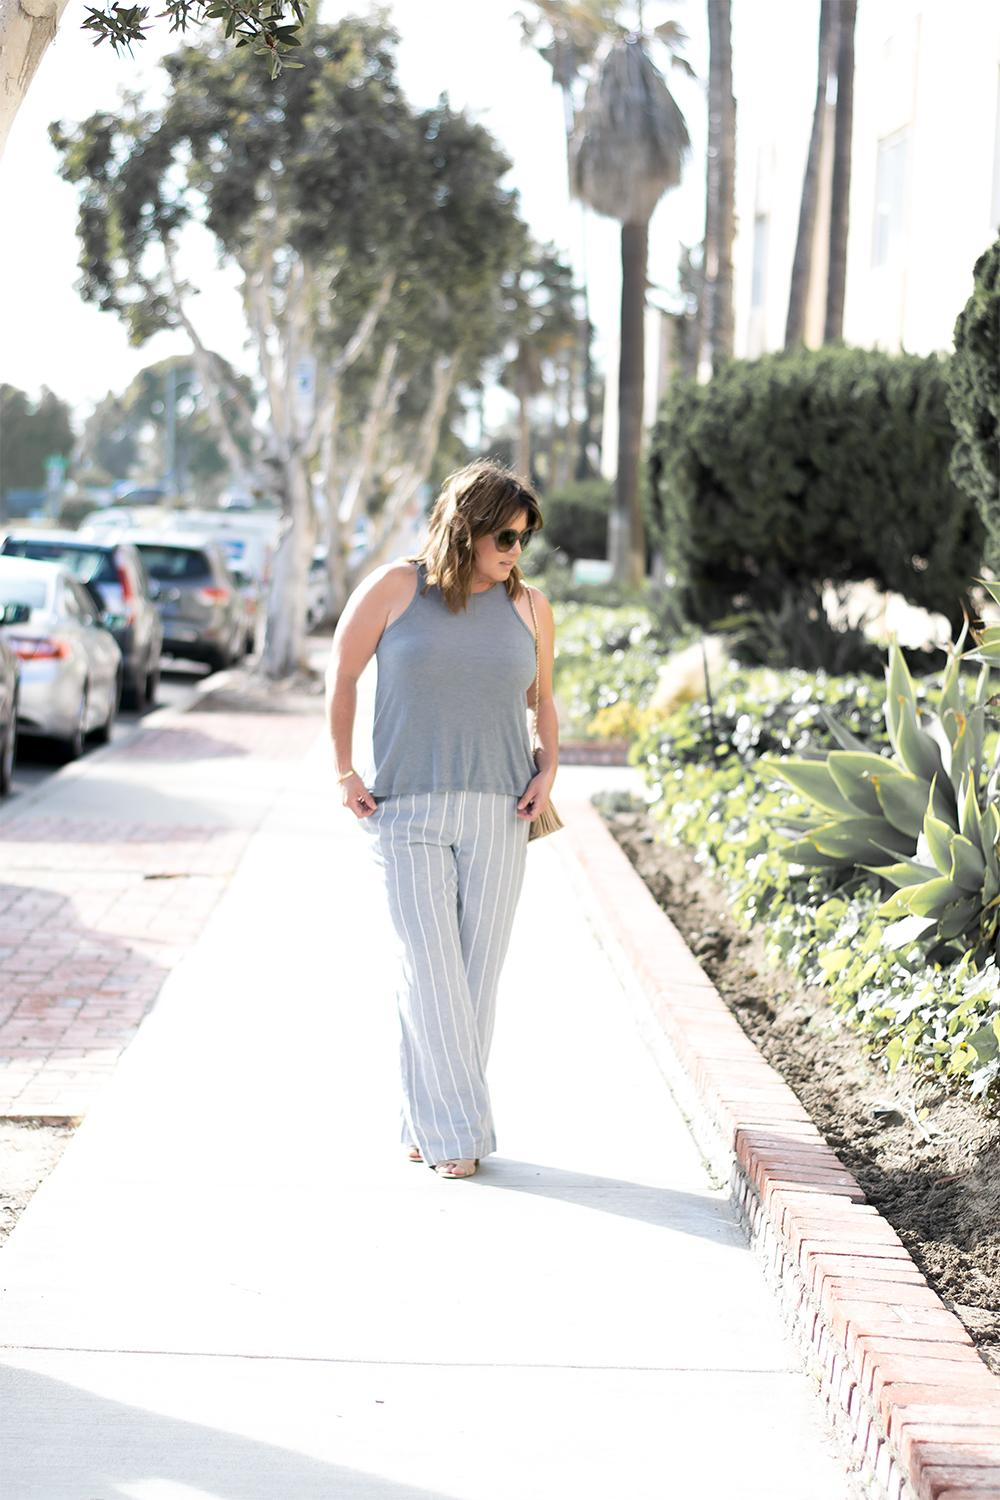 Striped-Linen-Pants-Outfit-Top-Blogger-Outfits-for-2017-Barefoot-in-LA-Fashion-Blog-Style-Ideas_1014